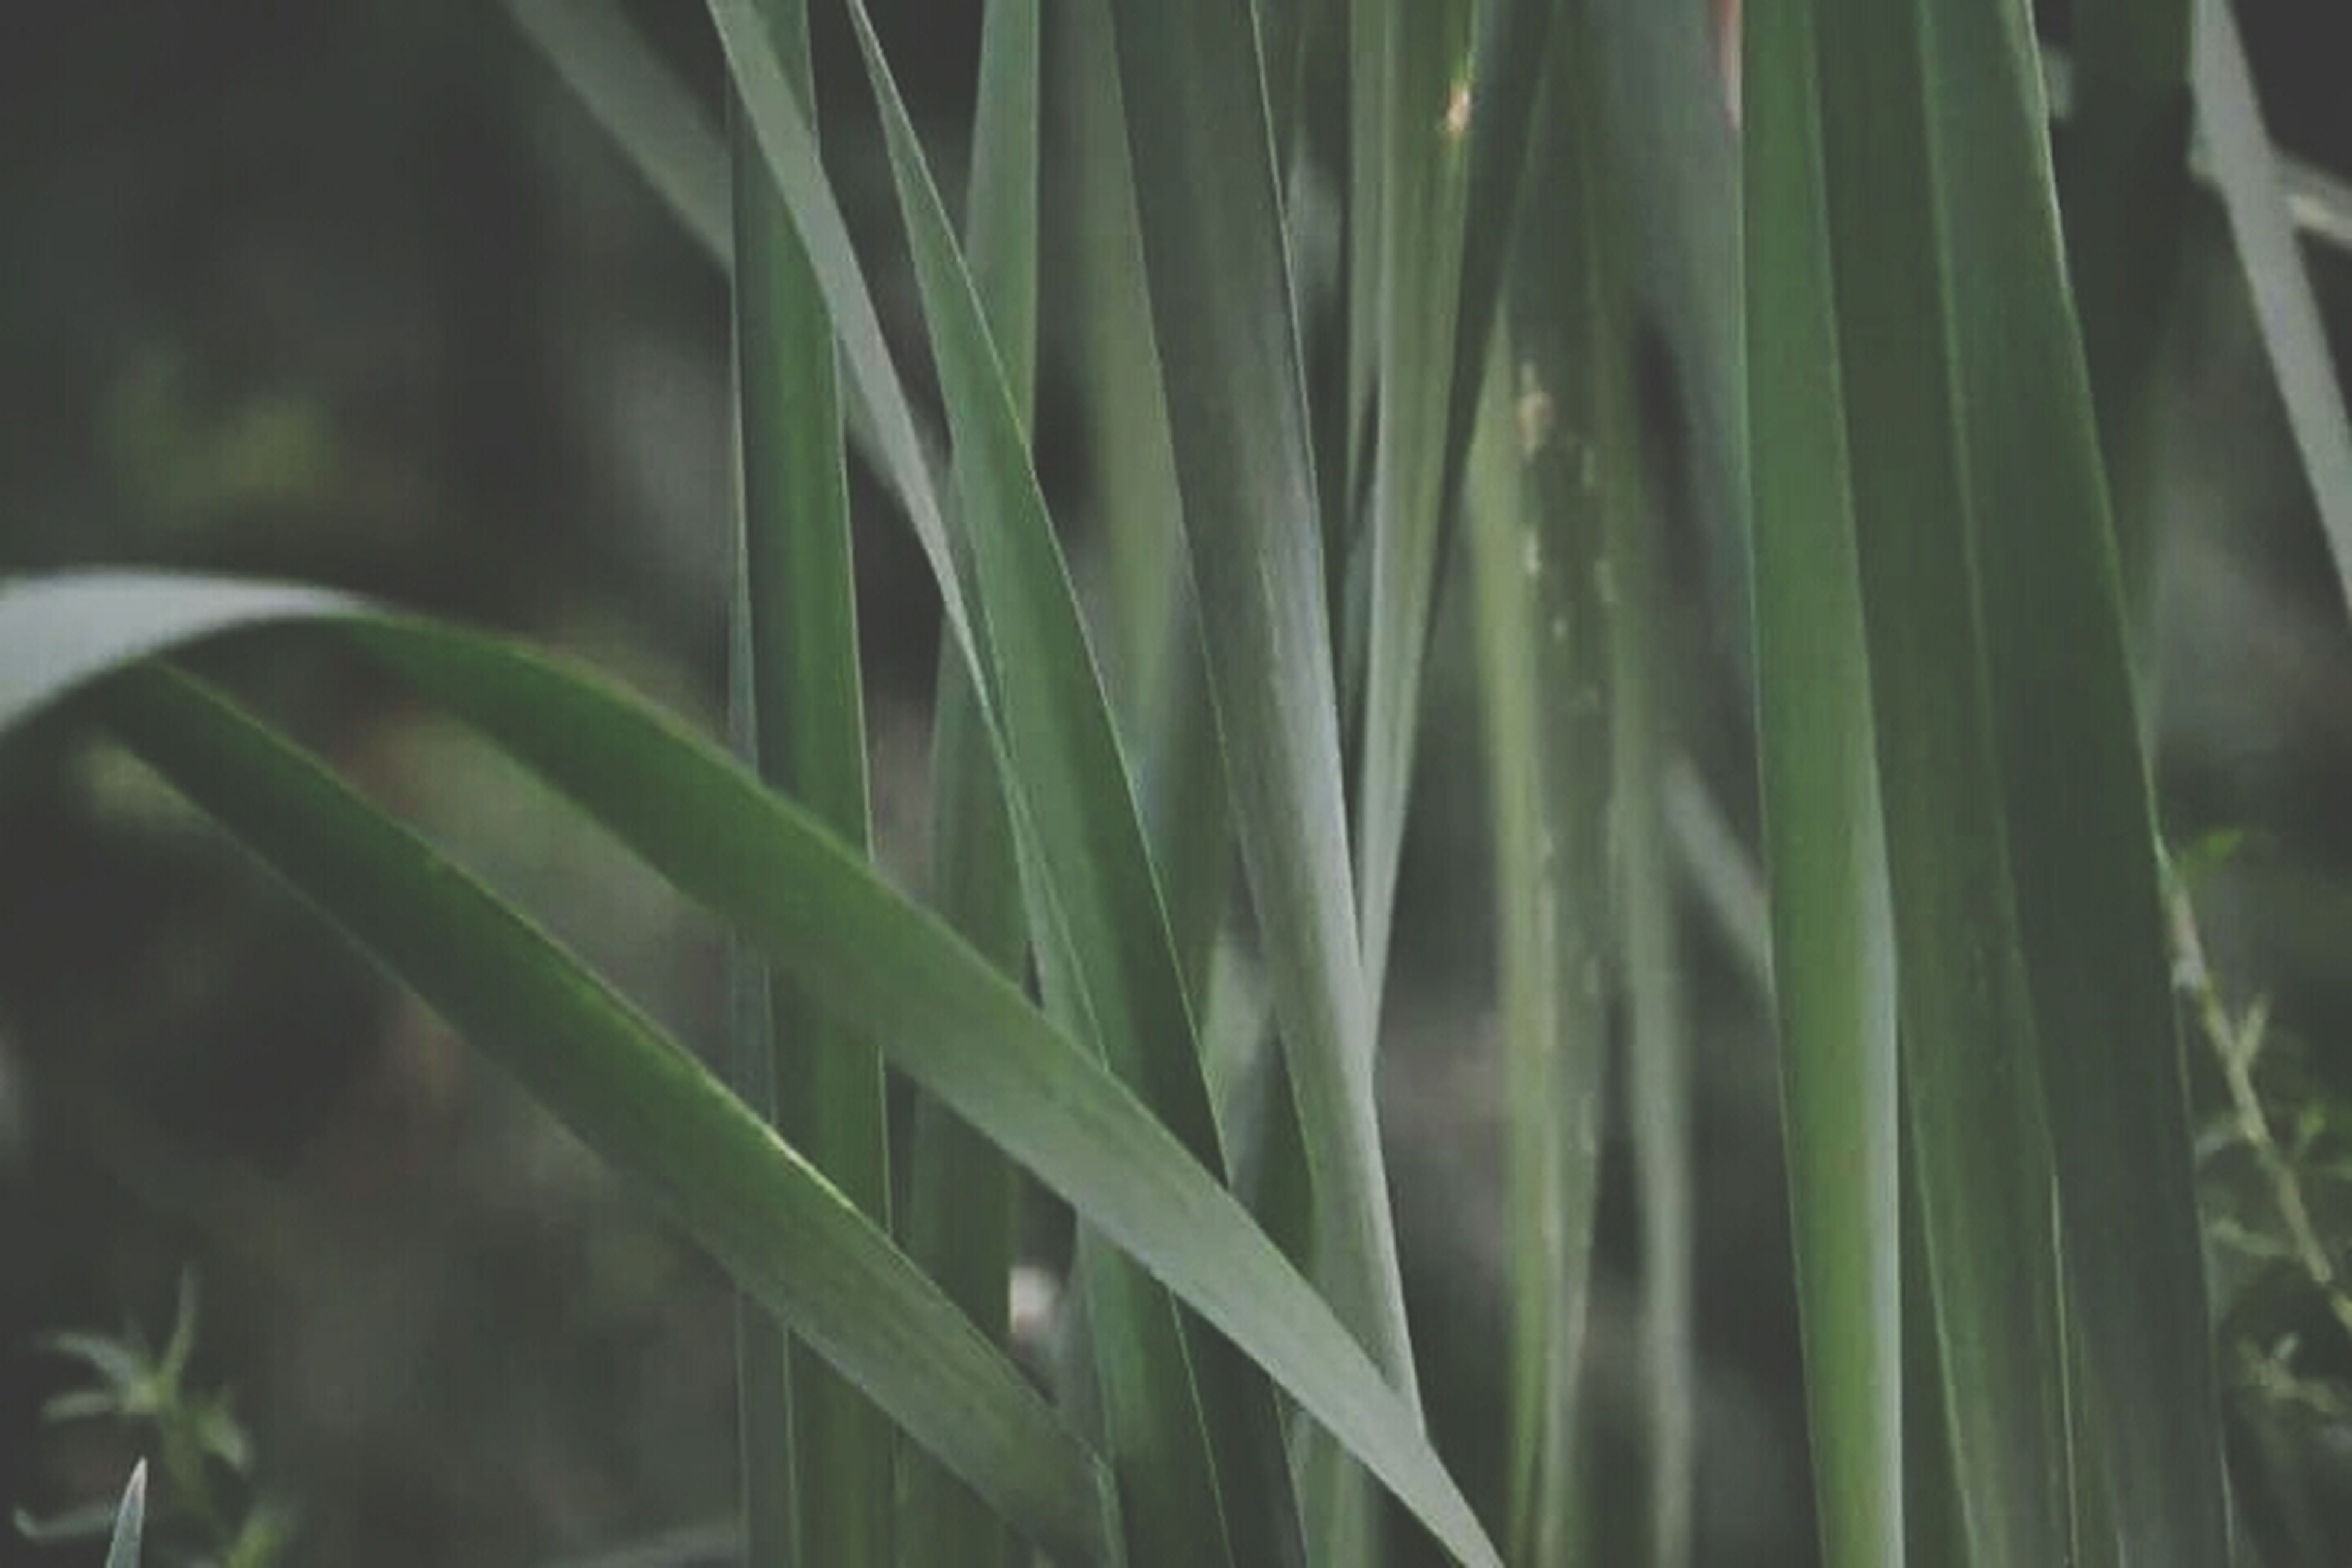 growth, plant, close-up, nature, grass, green color, leaf, blade of grass, selective focus, beauty in nature, freshness, focus on foreground, drop, growing, outdoors, field, wet, water, no people, day